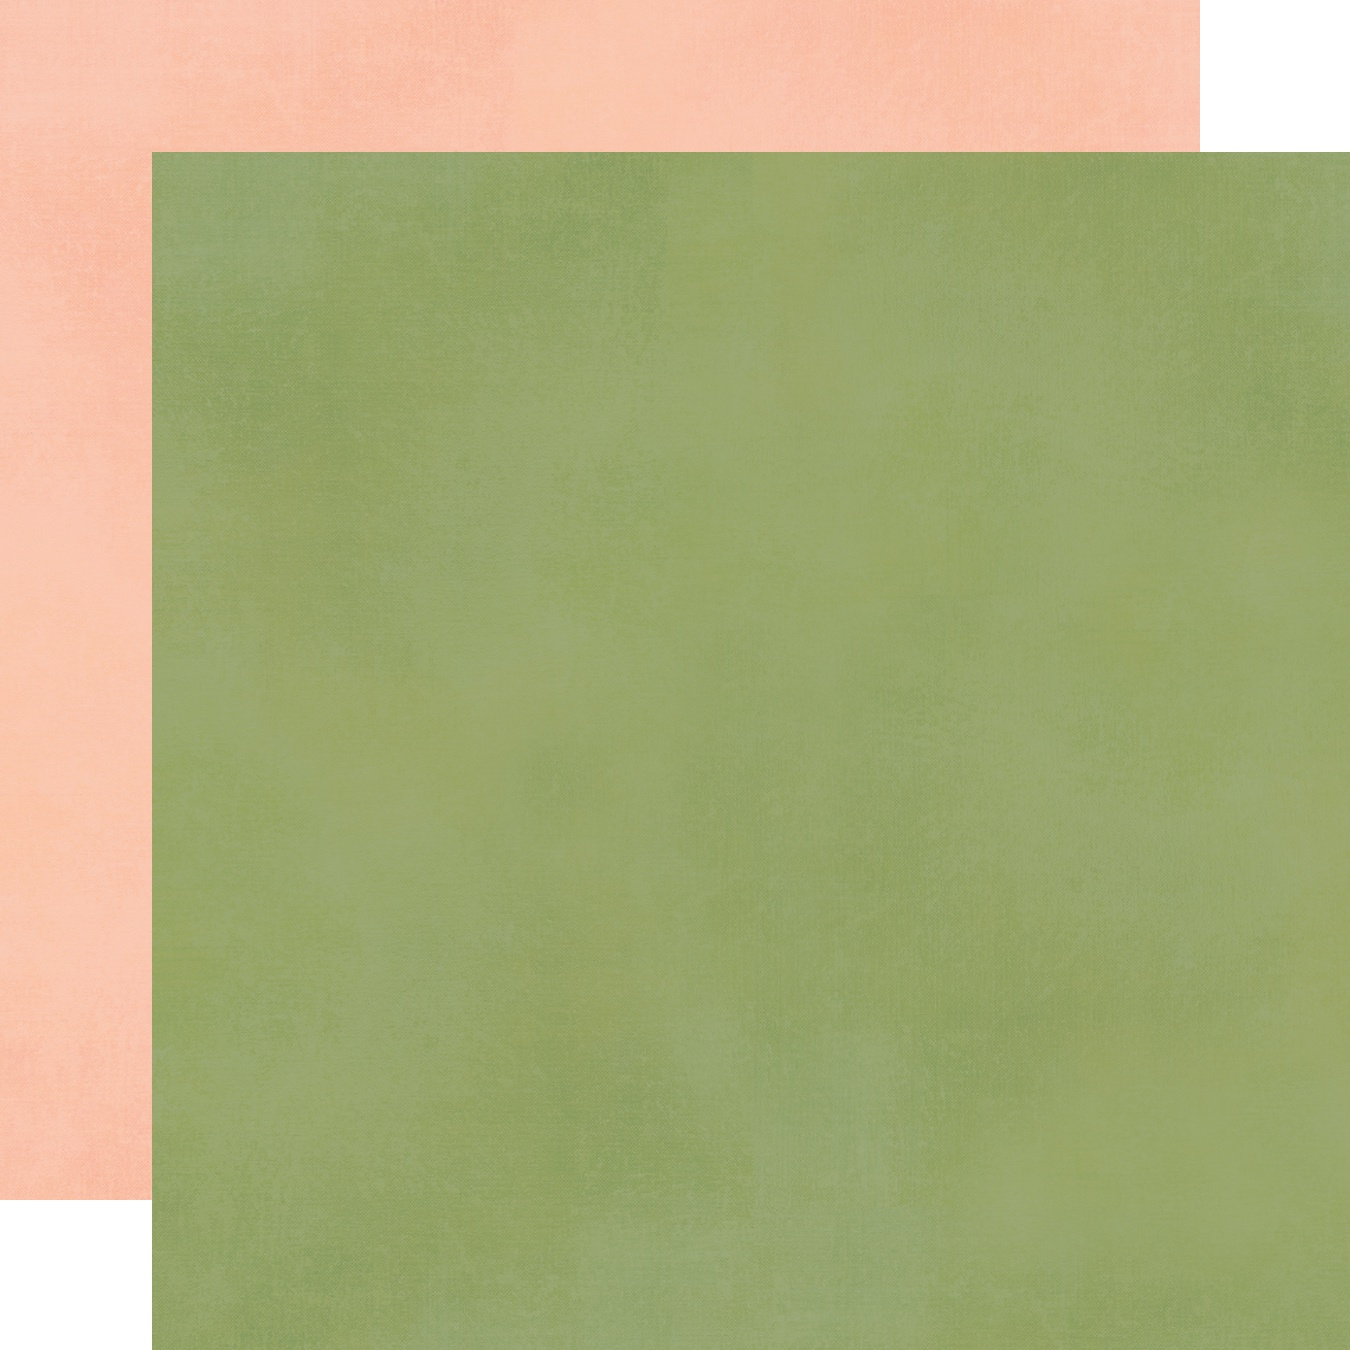 Spring Farmhouse Double-Sided Cardstock 12X12-Blush/Green Simple Basic